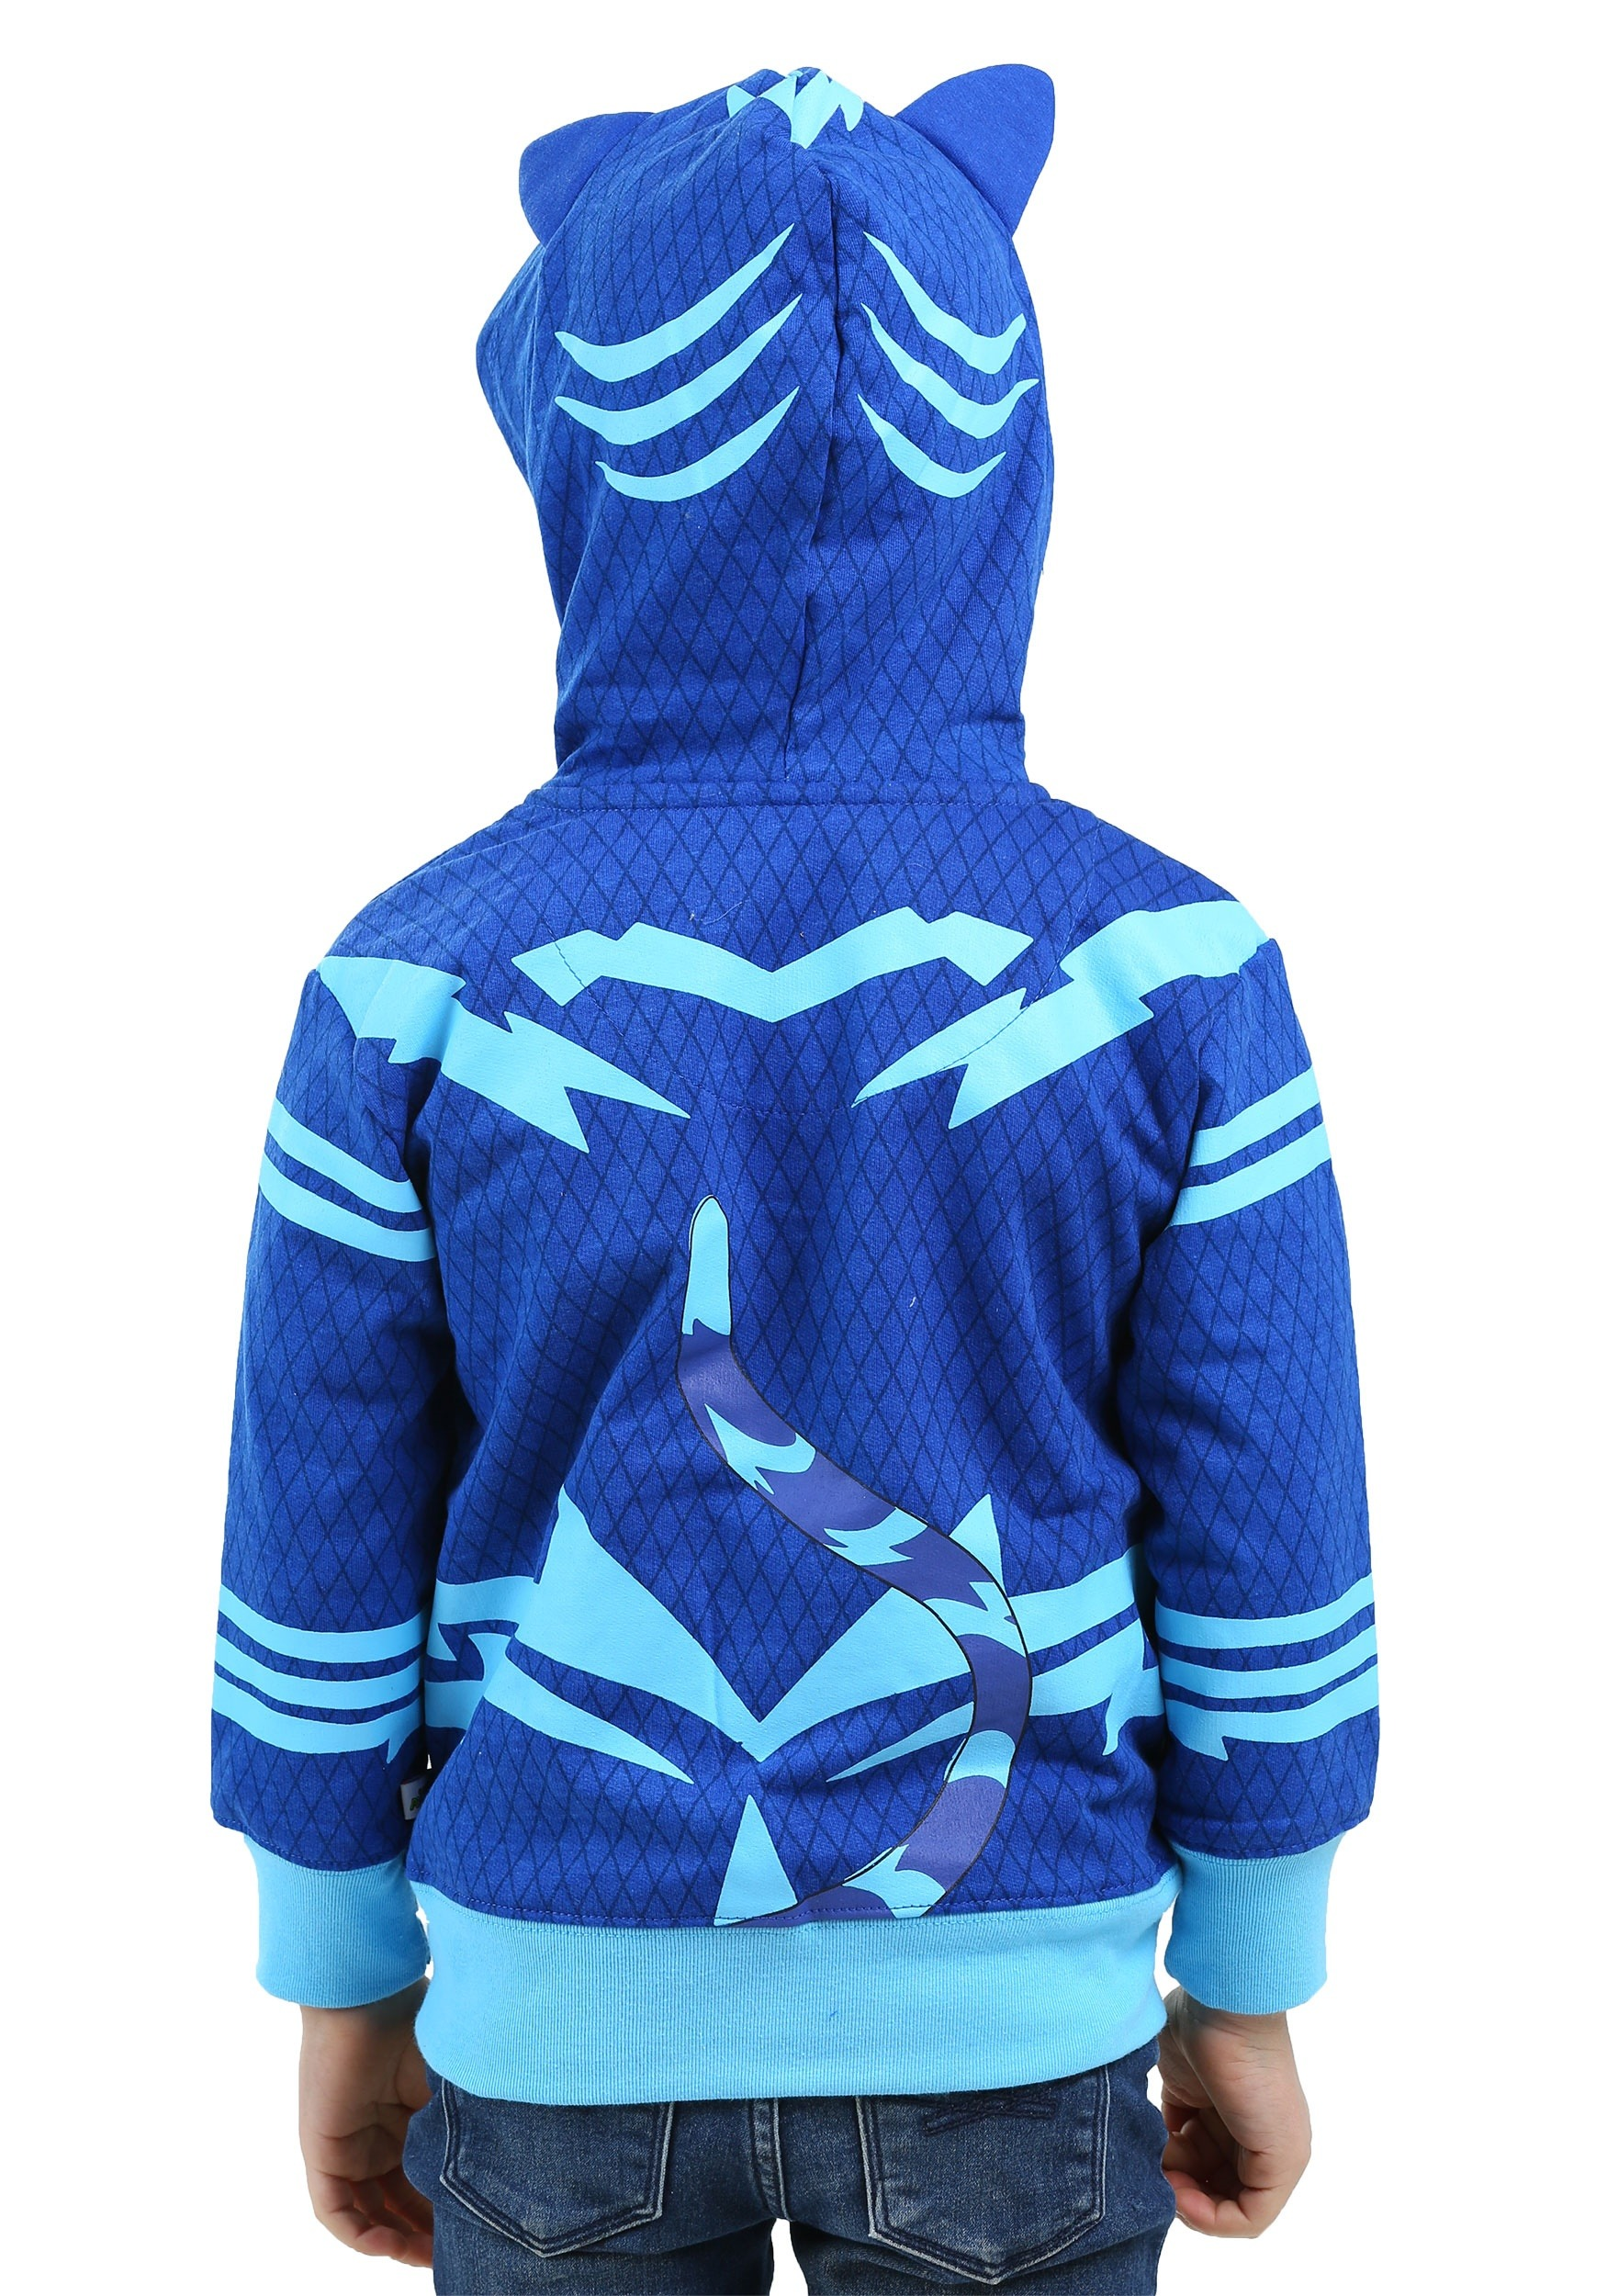 pj-masks-cat-boy-toddler-hooded-costume-sweatshirt